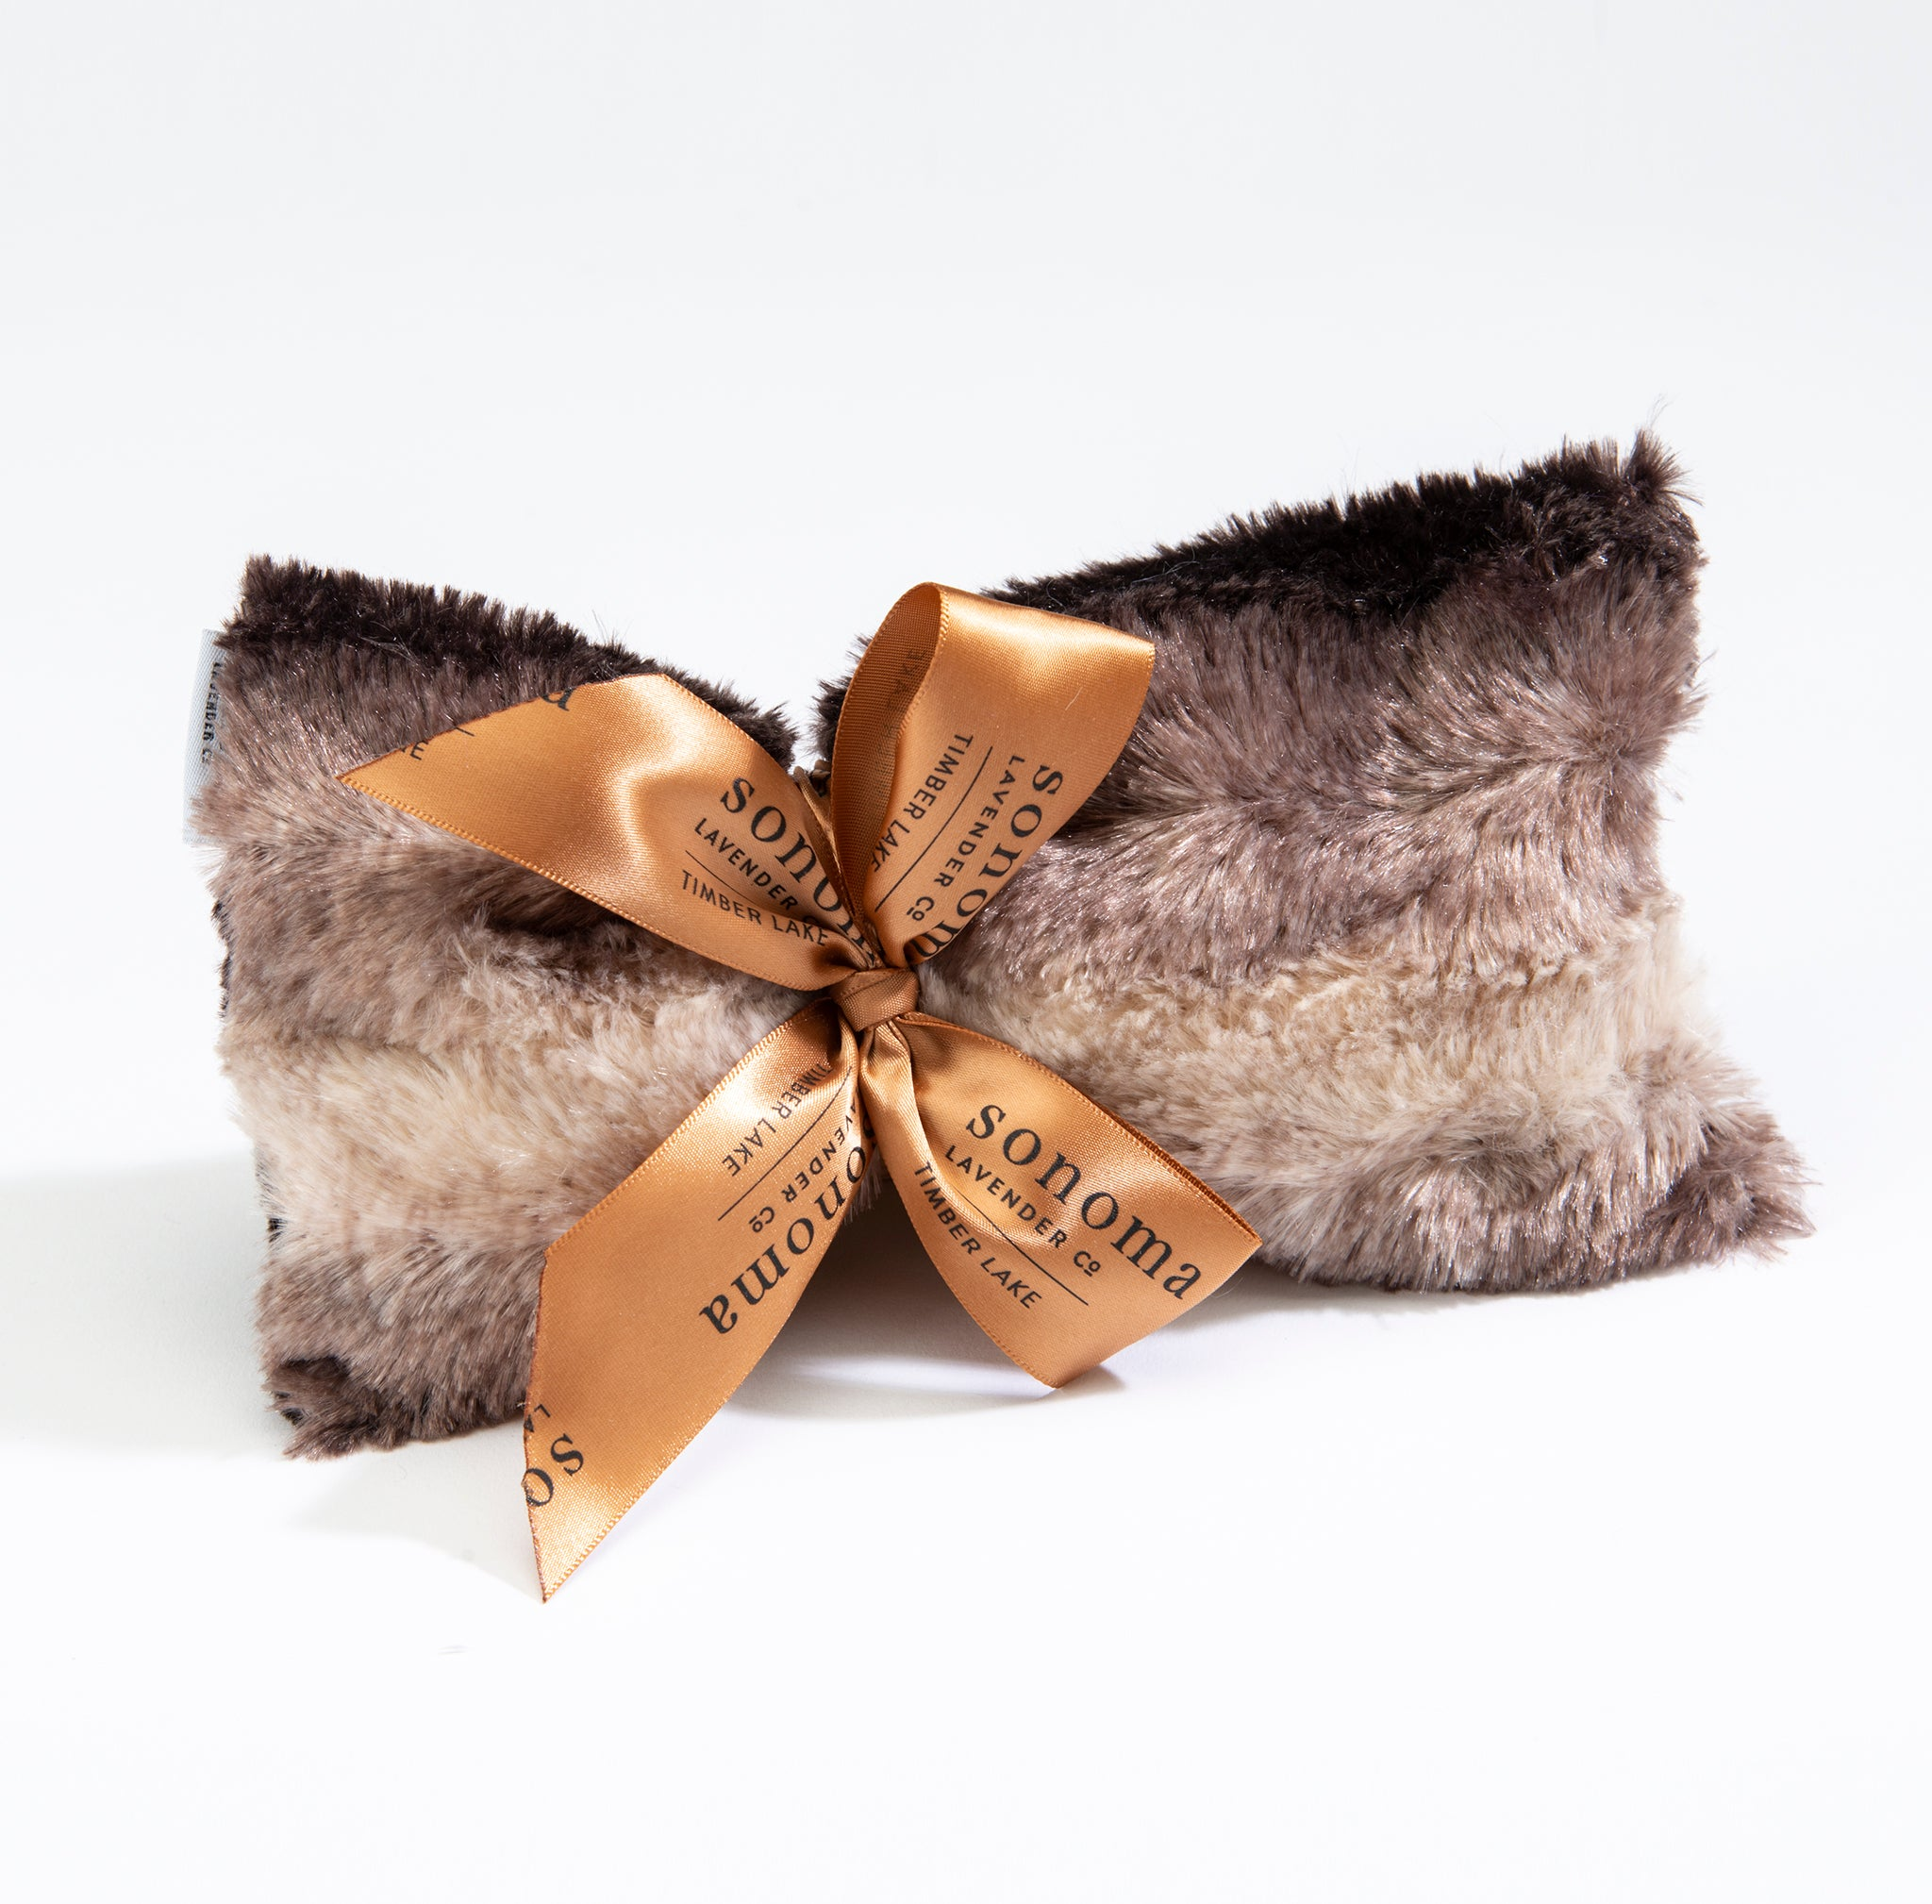 Timber Lake Spa Mask in Luxurious Faux Chinchilla Fur